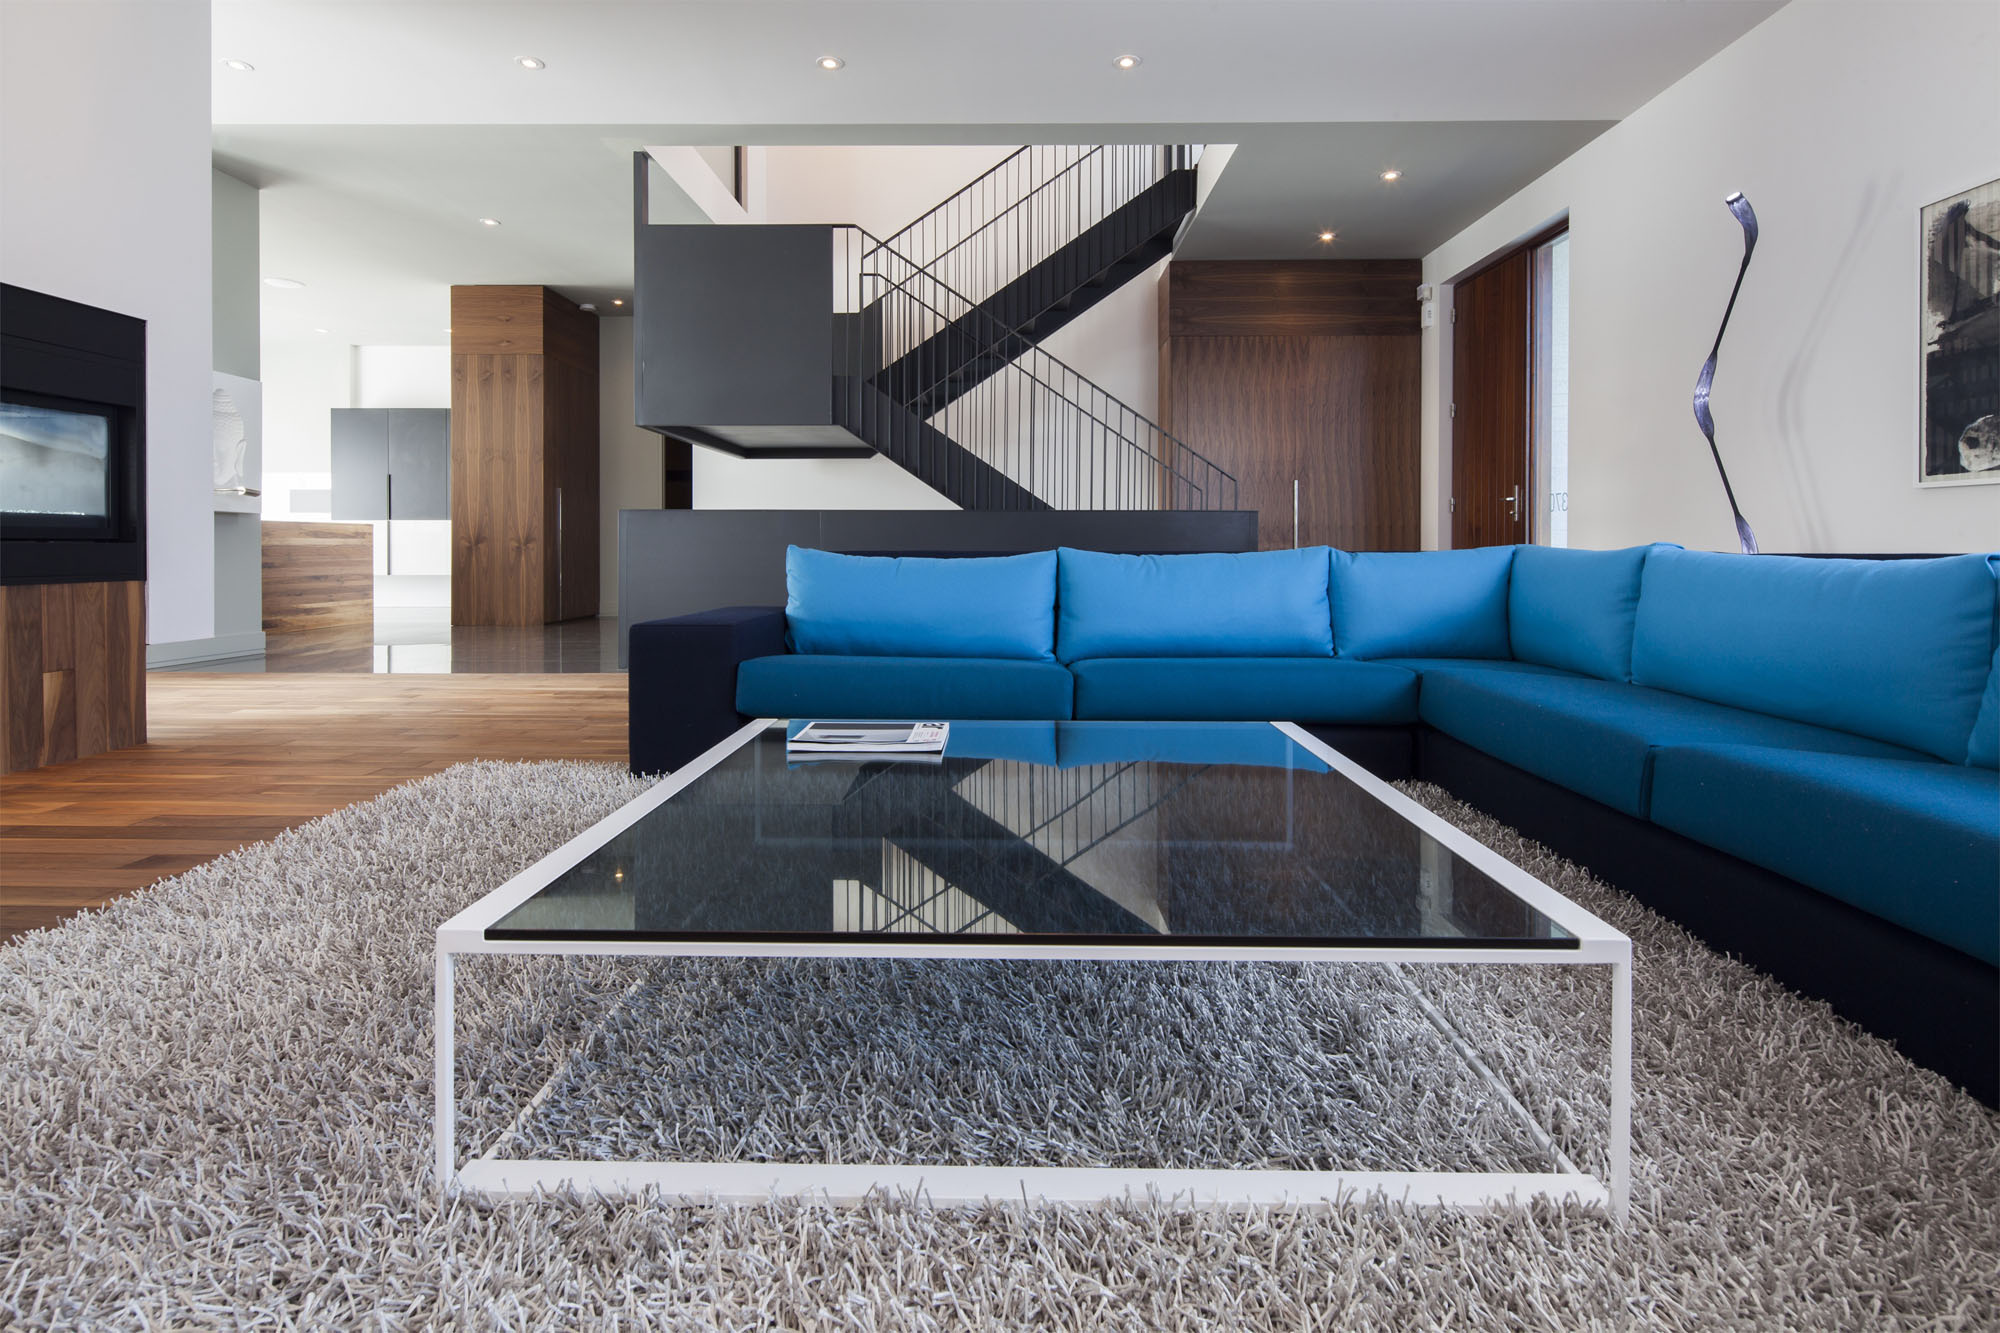 Residence Nguyen by Atelier Moderno